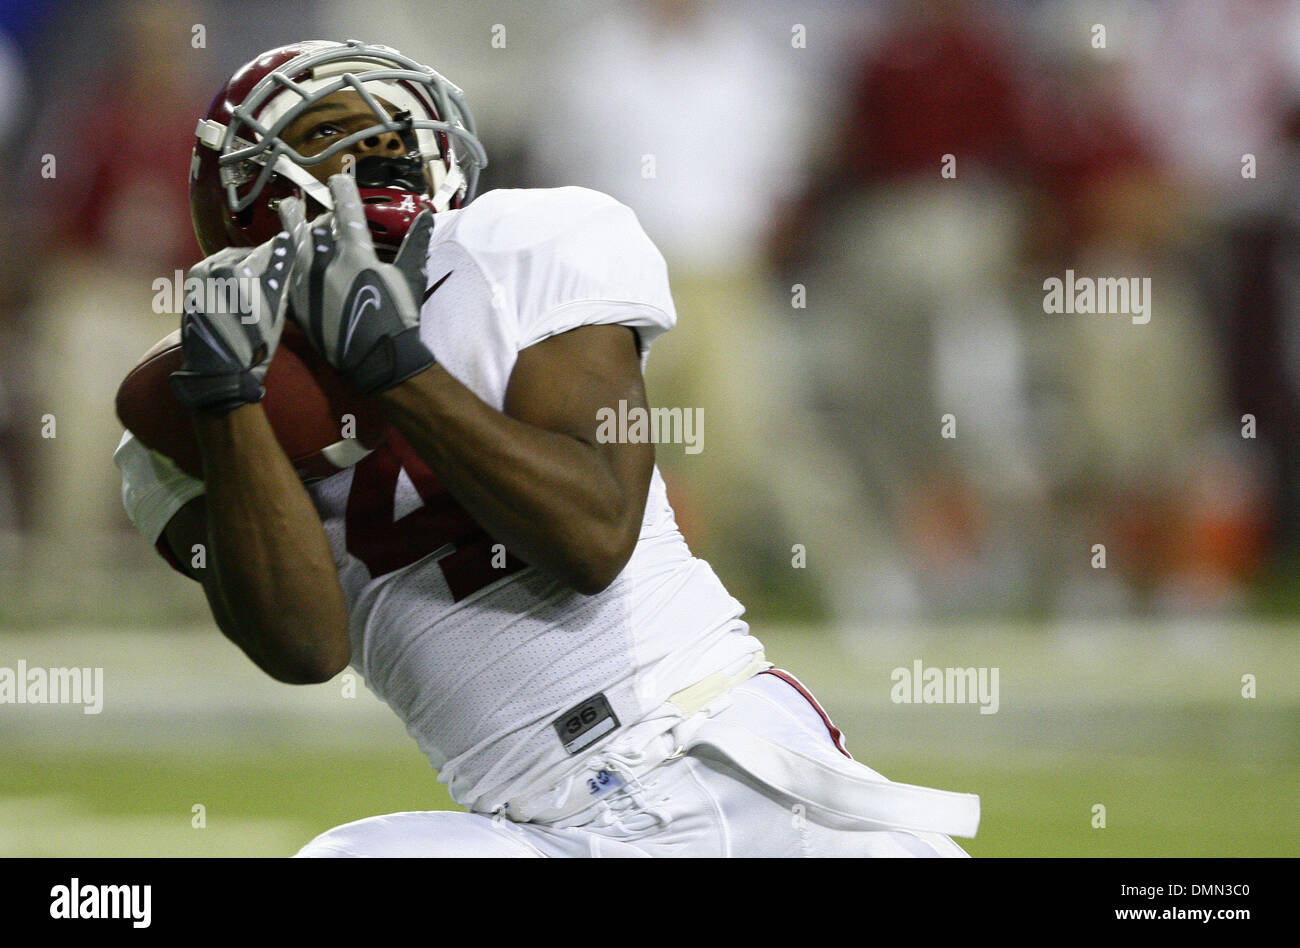 Sep 05, 2009 - Atlanta, Georgia, USA - NCAA Football - Alabama's MARQUIS MAZE (4) catches a deep pass during the second half of his team's game against Virginia Tech in the Georgia Dome. (Credit Image: © Josh D. Weiss/ZUMA Press) - Stock Image